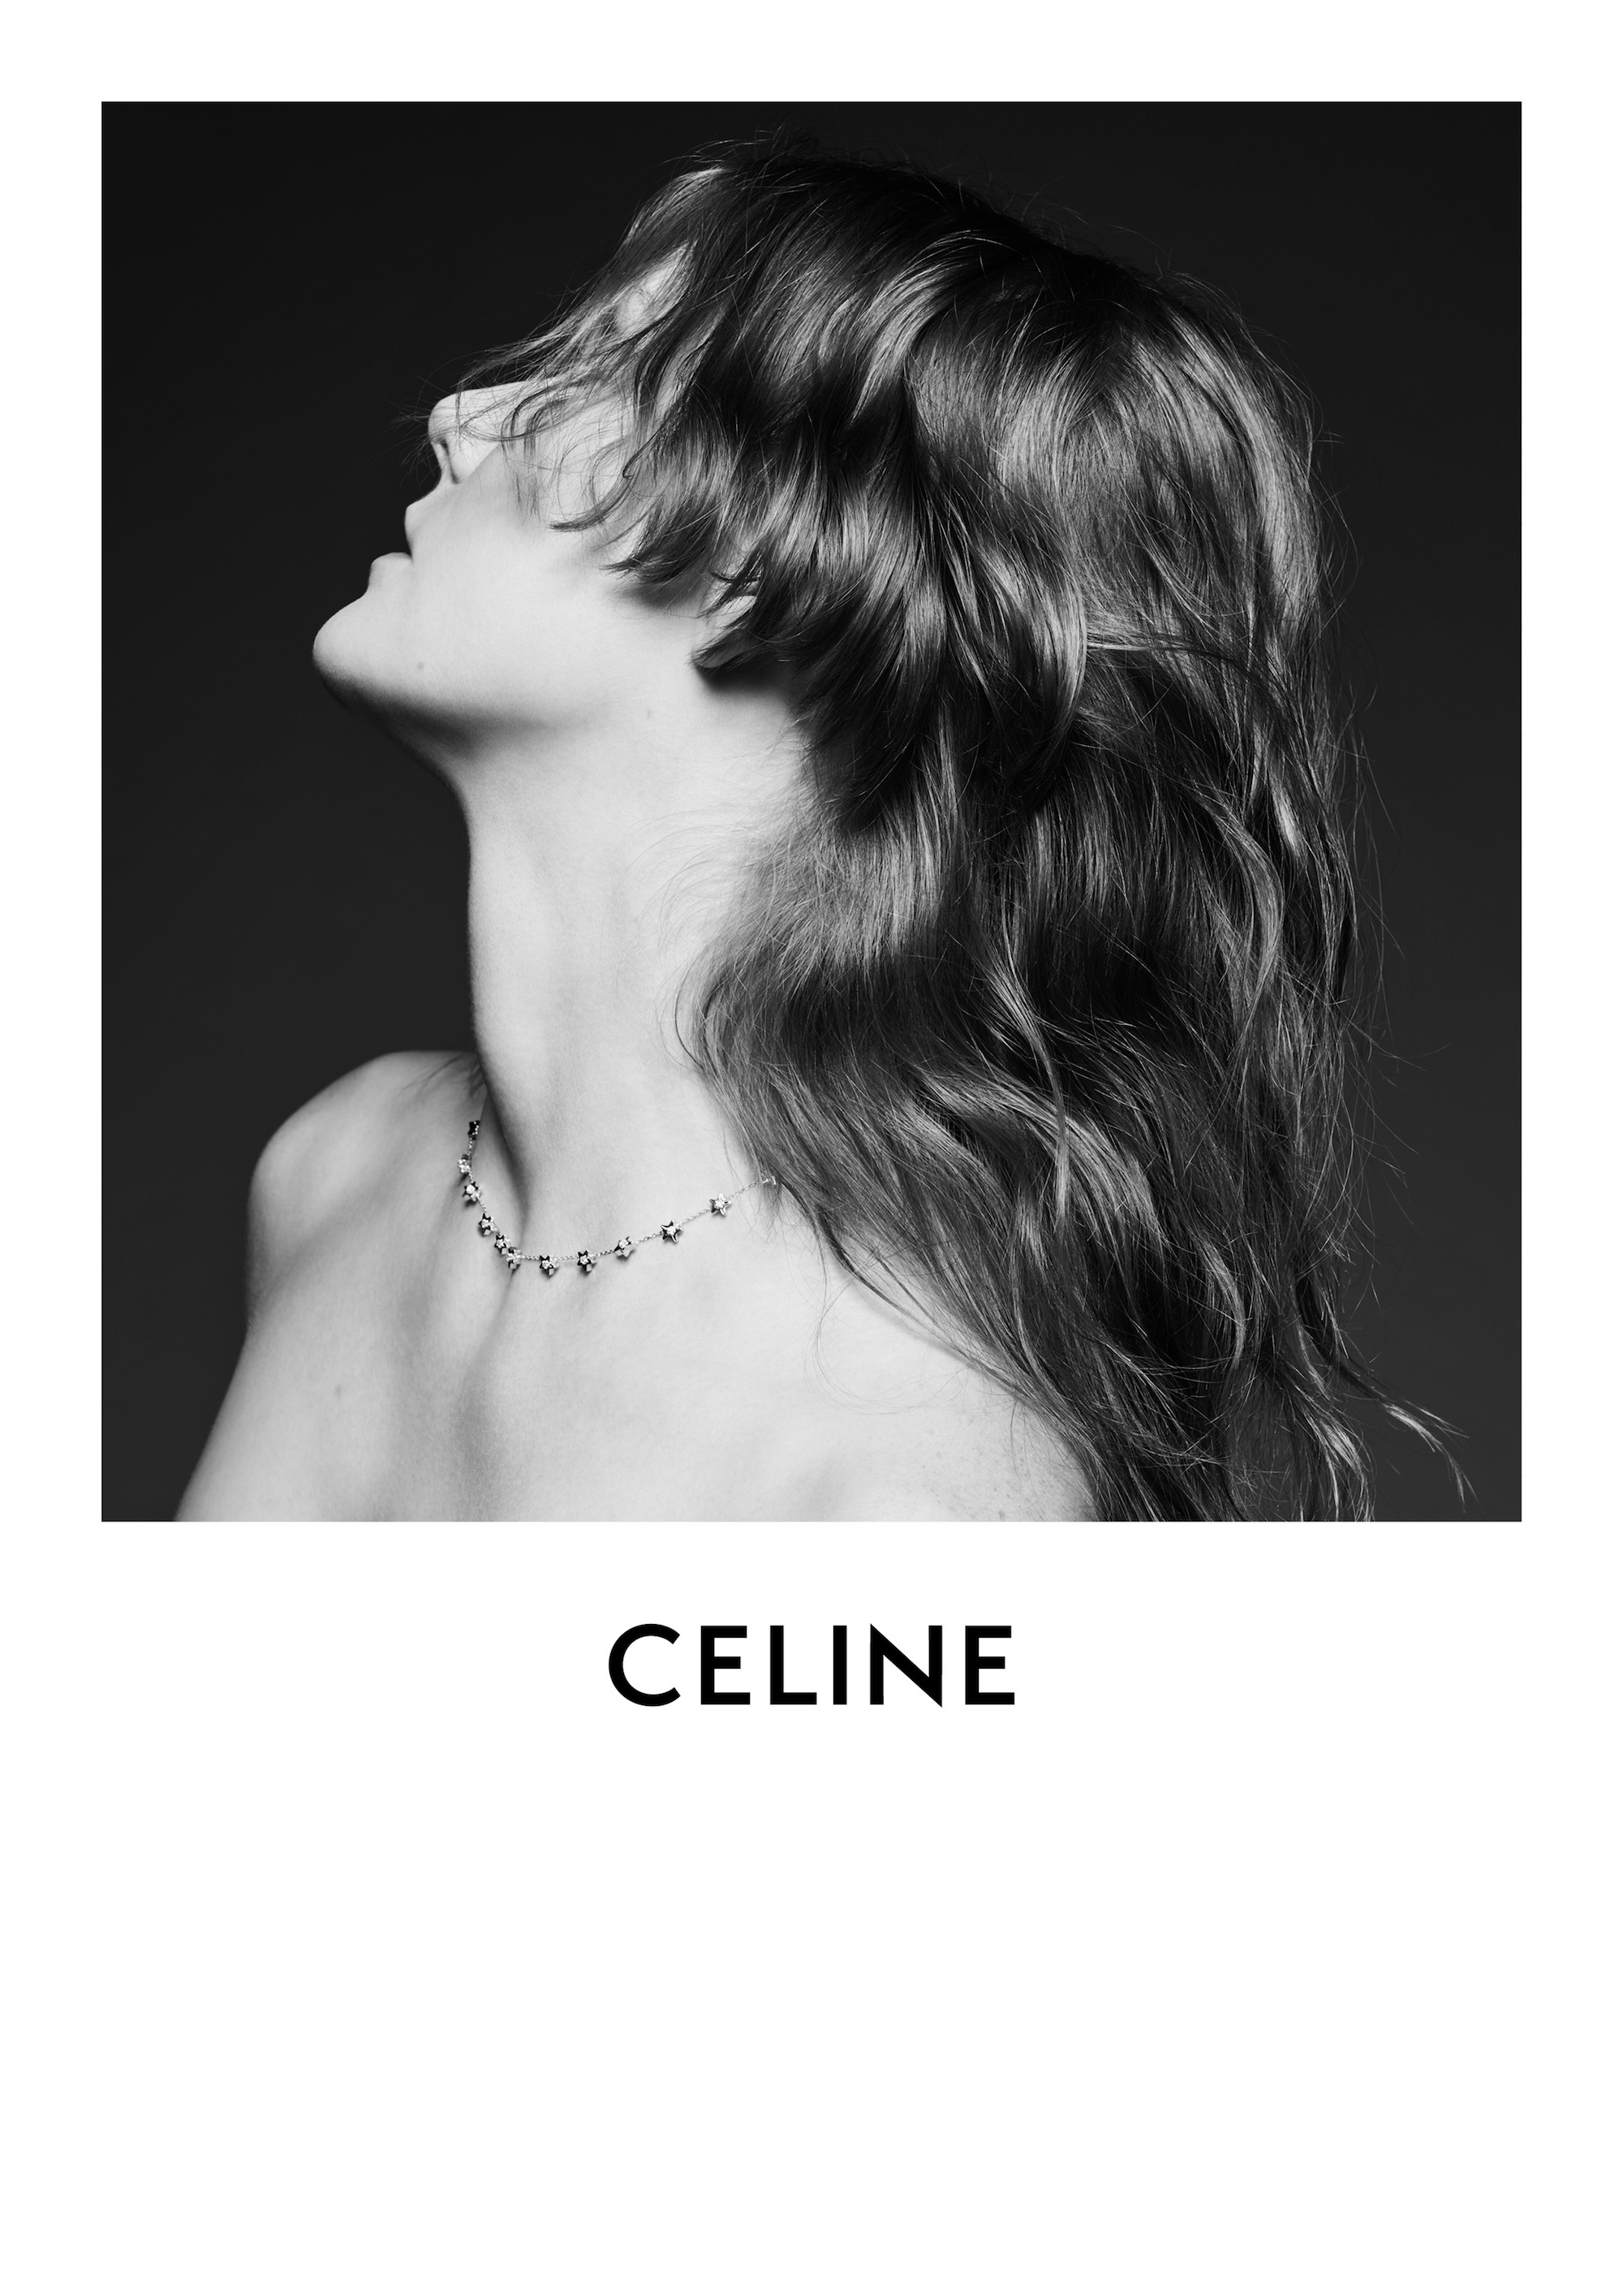 b94bca2ef709 #CELINE | THE FASHION POST